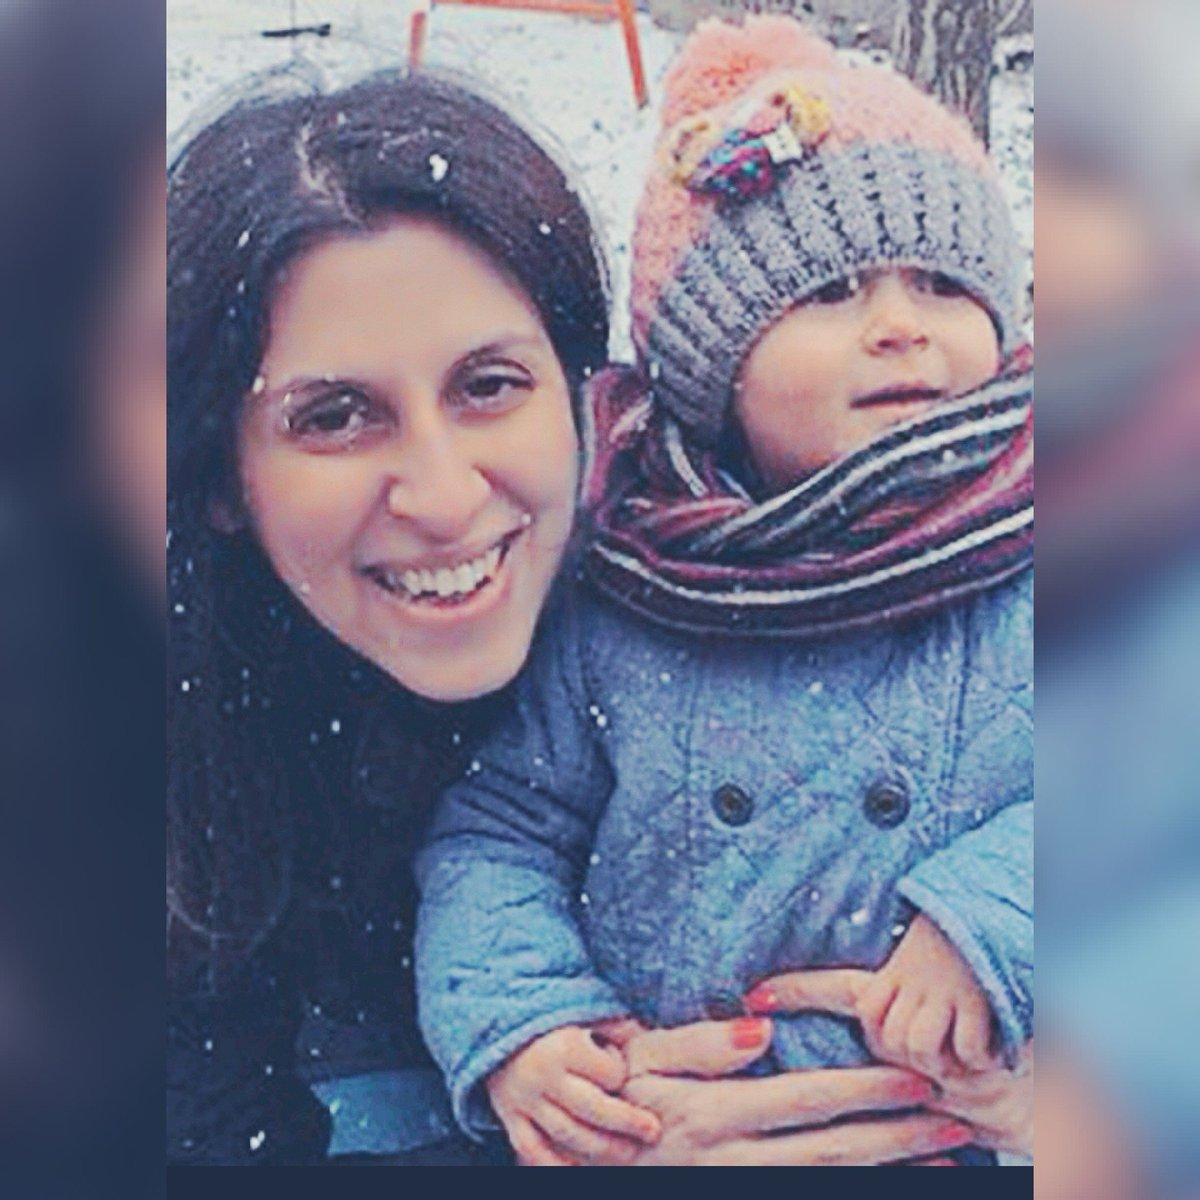 #FreeNazanin Silence is compliance to this grotesque injustice to an innocent mother &amp; her child #humanity @AlistairBurtUK @theresa_may<br>http://pic.twitter.com/viSmUeYaV0